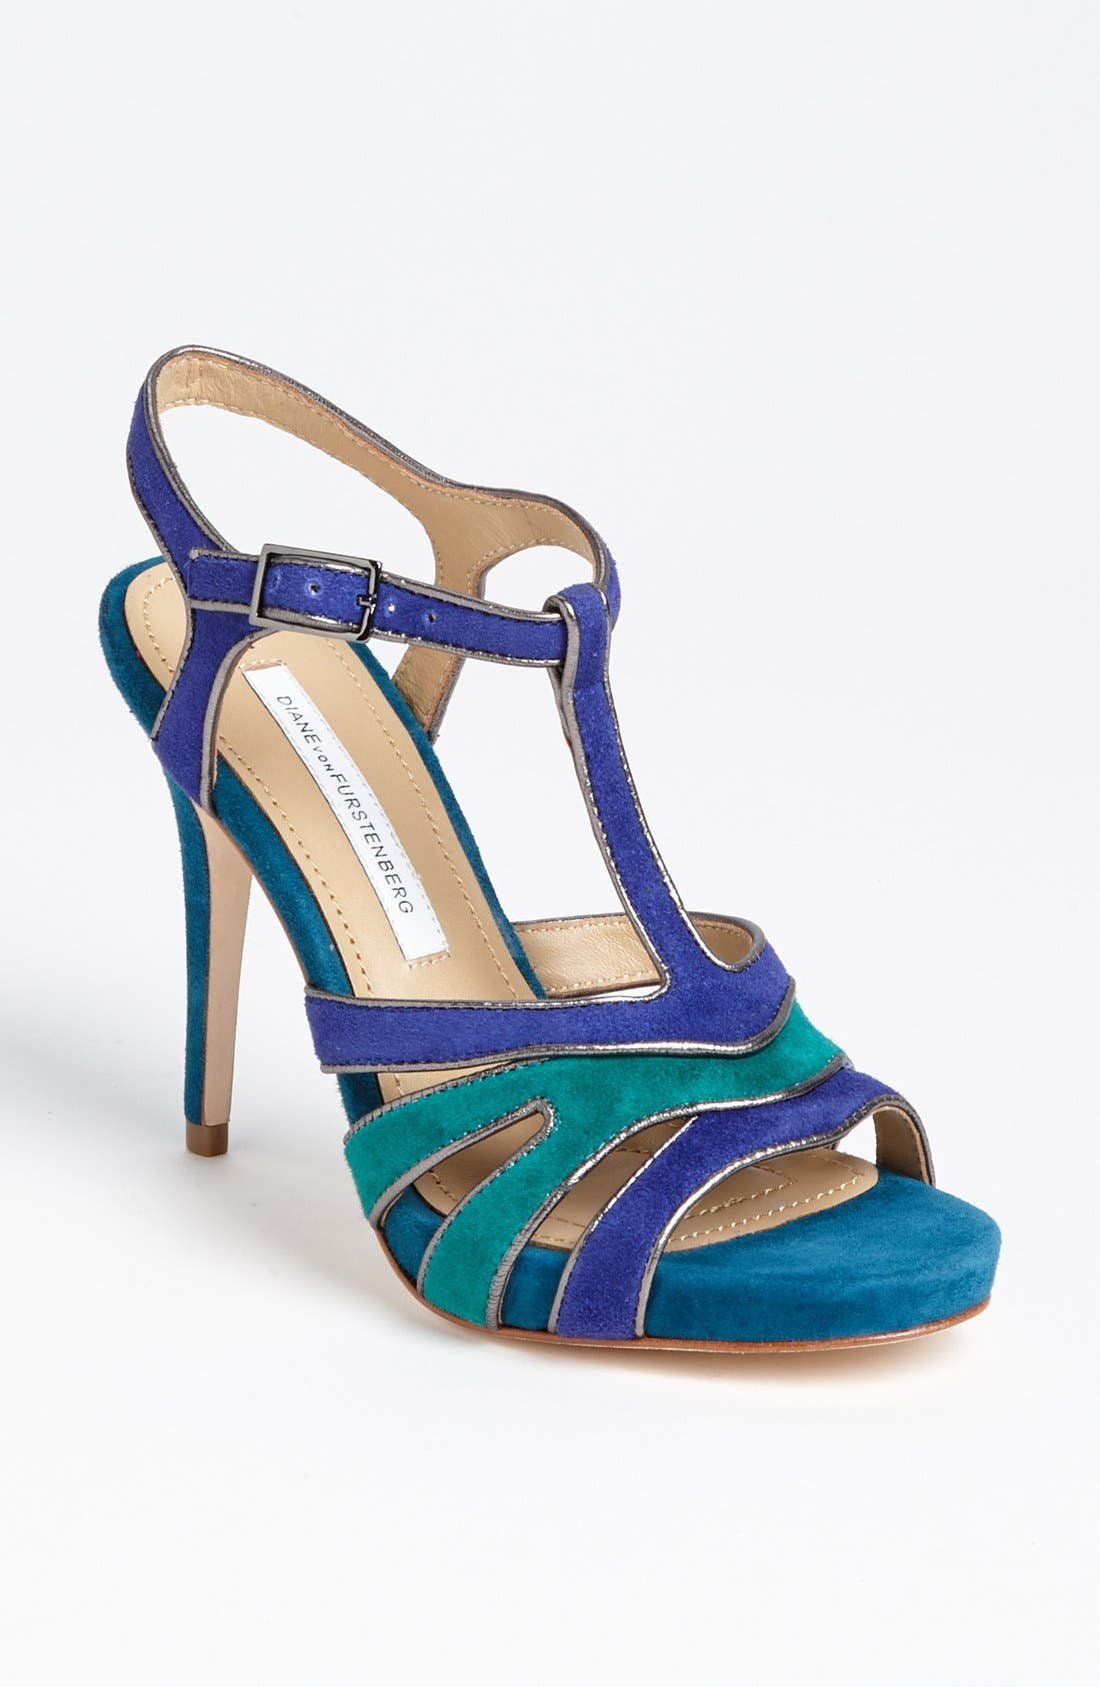 Alternate Image 1 Selected - Diane von Furstenberg 'Julip' Sandal (Online Only)